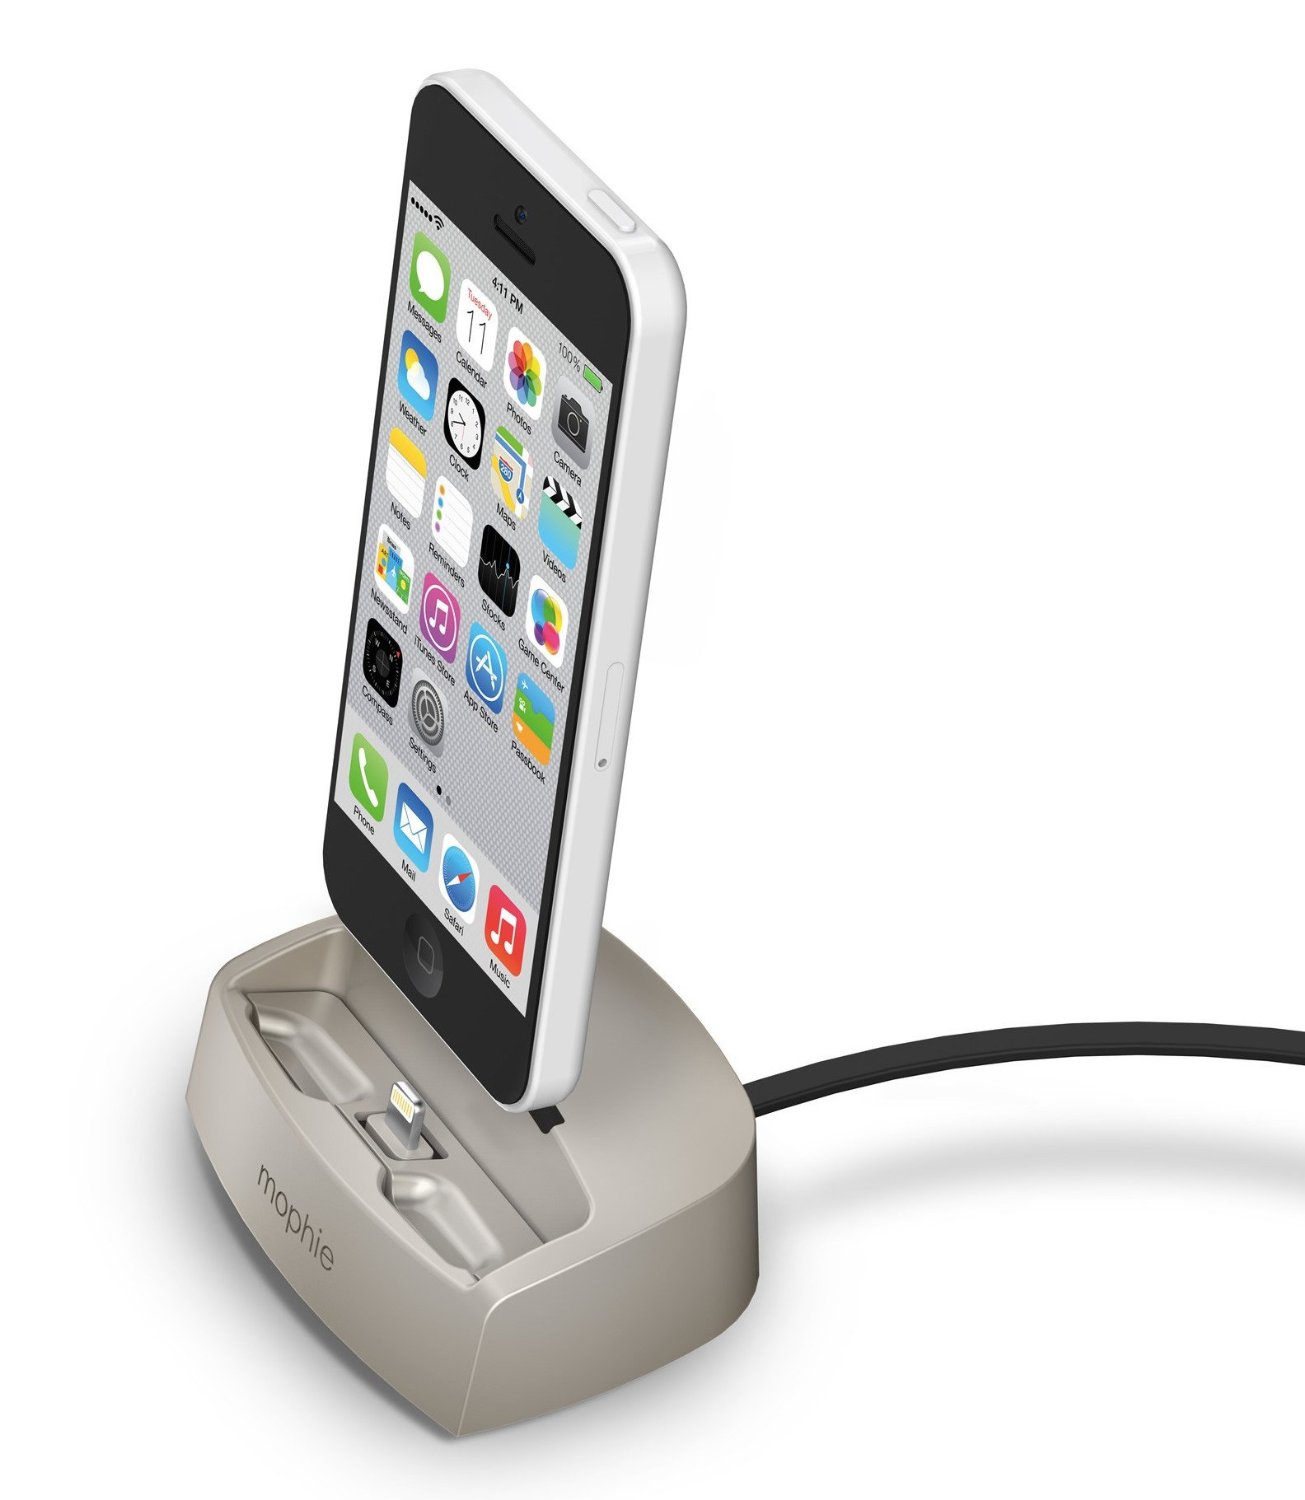 mophie Lightning Desktop Dock 2